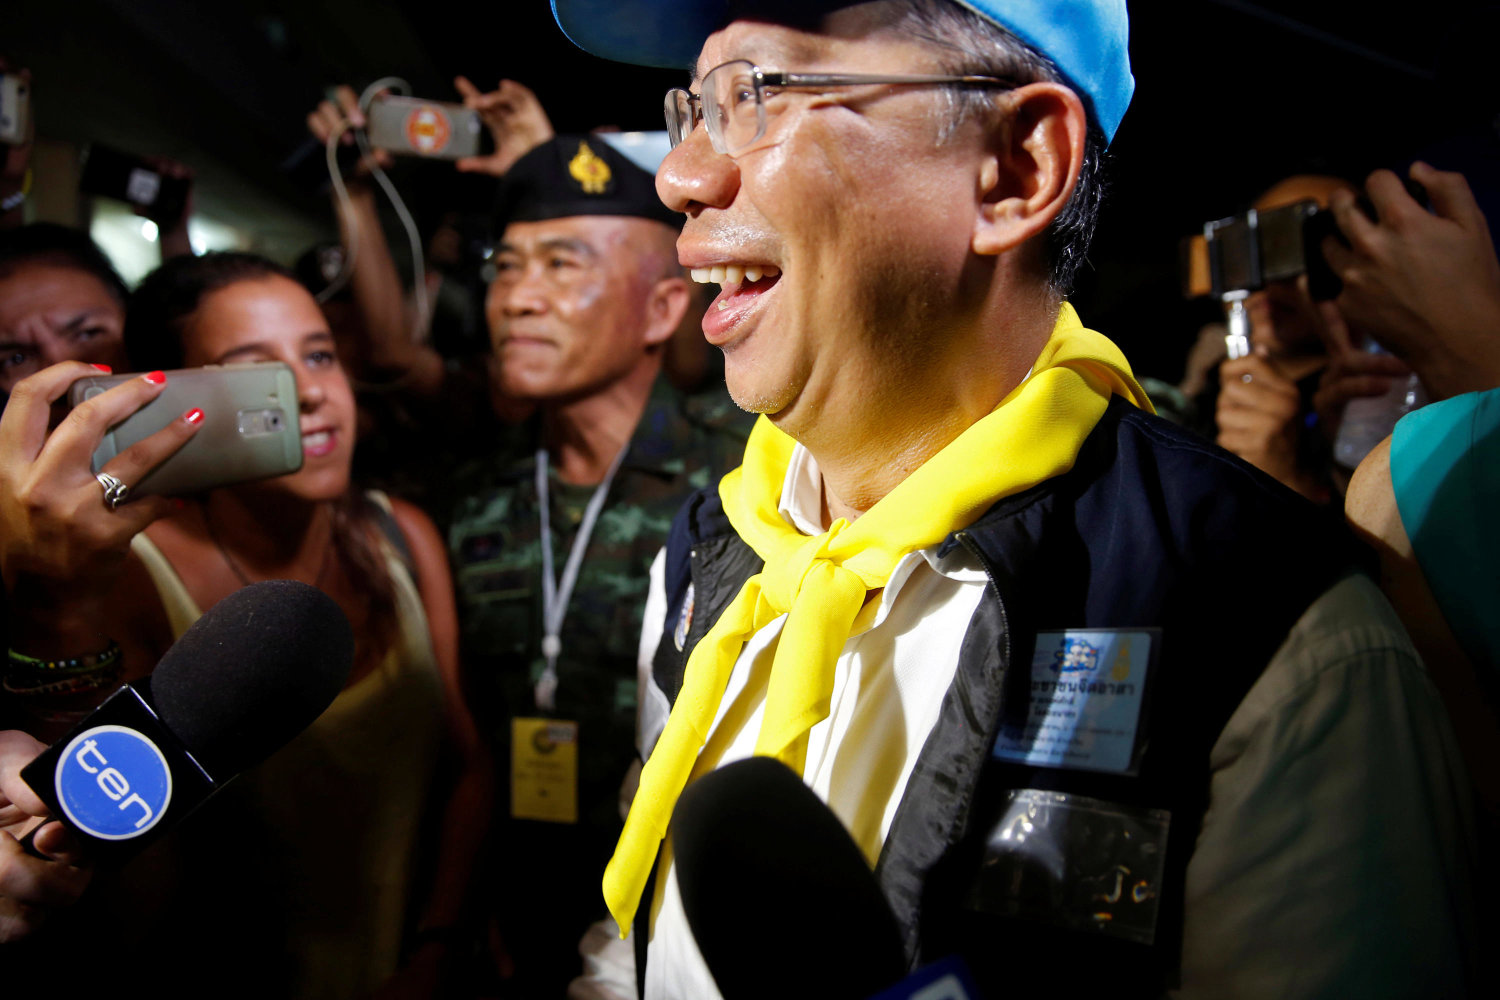 Acting Chiang Rai province governor Narongsak Osatanakorn talks to journalists after a news conference near Tham Luang cave complex in the northern province of Chiang Rai